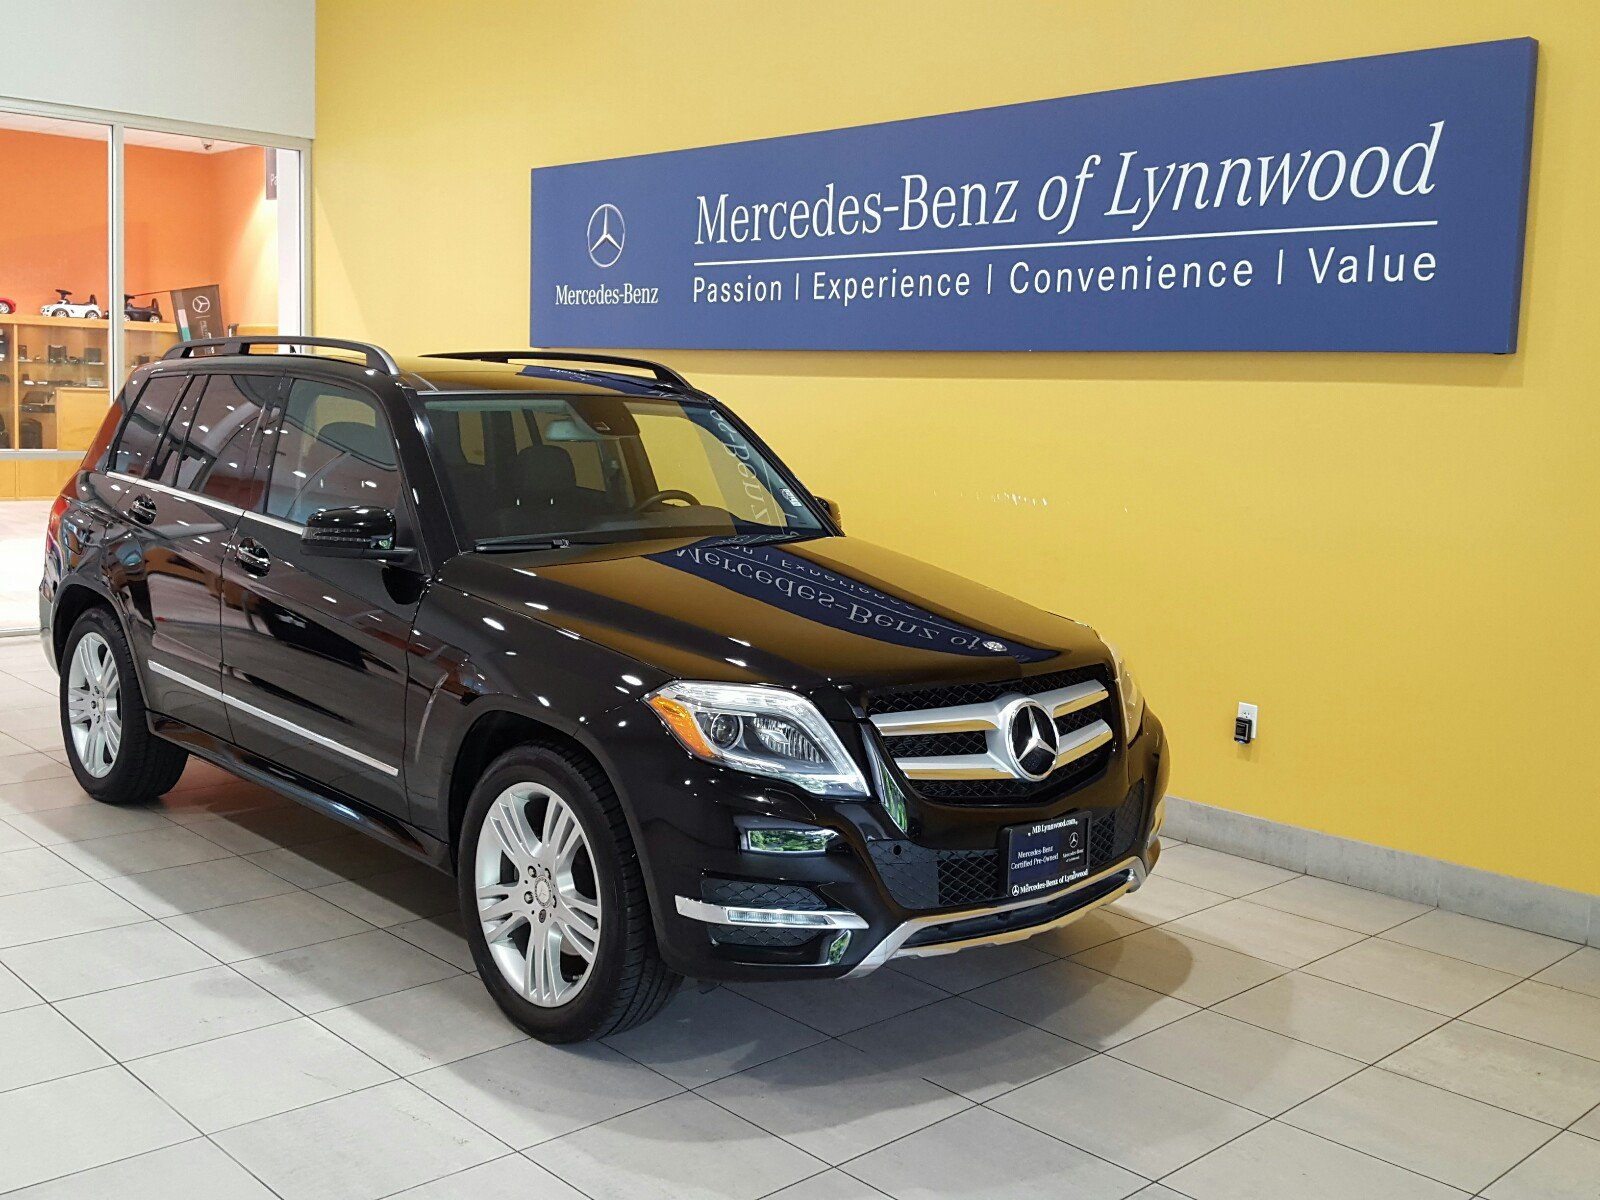 Certified pre owned 2013 mercedes benz glk glk 350 4matic for Mercedes benz pre owned vehicles